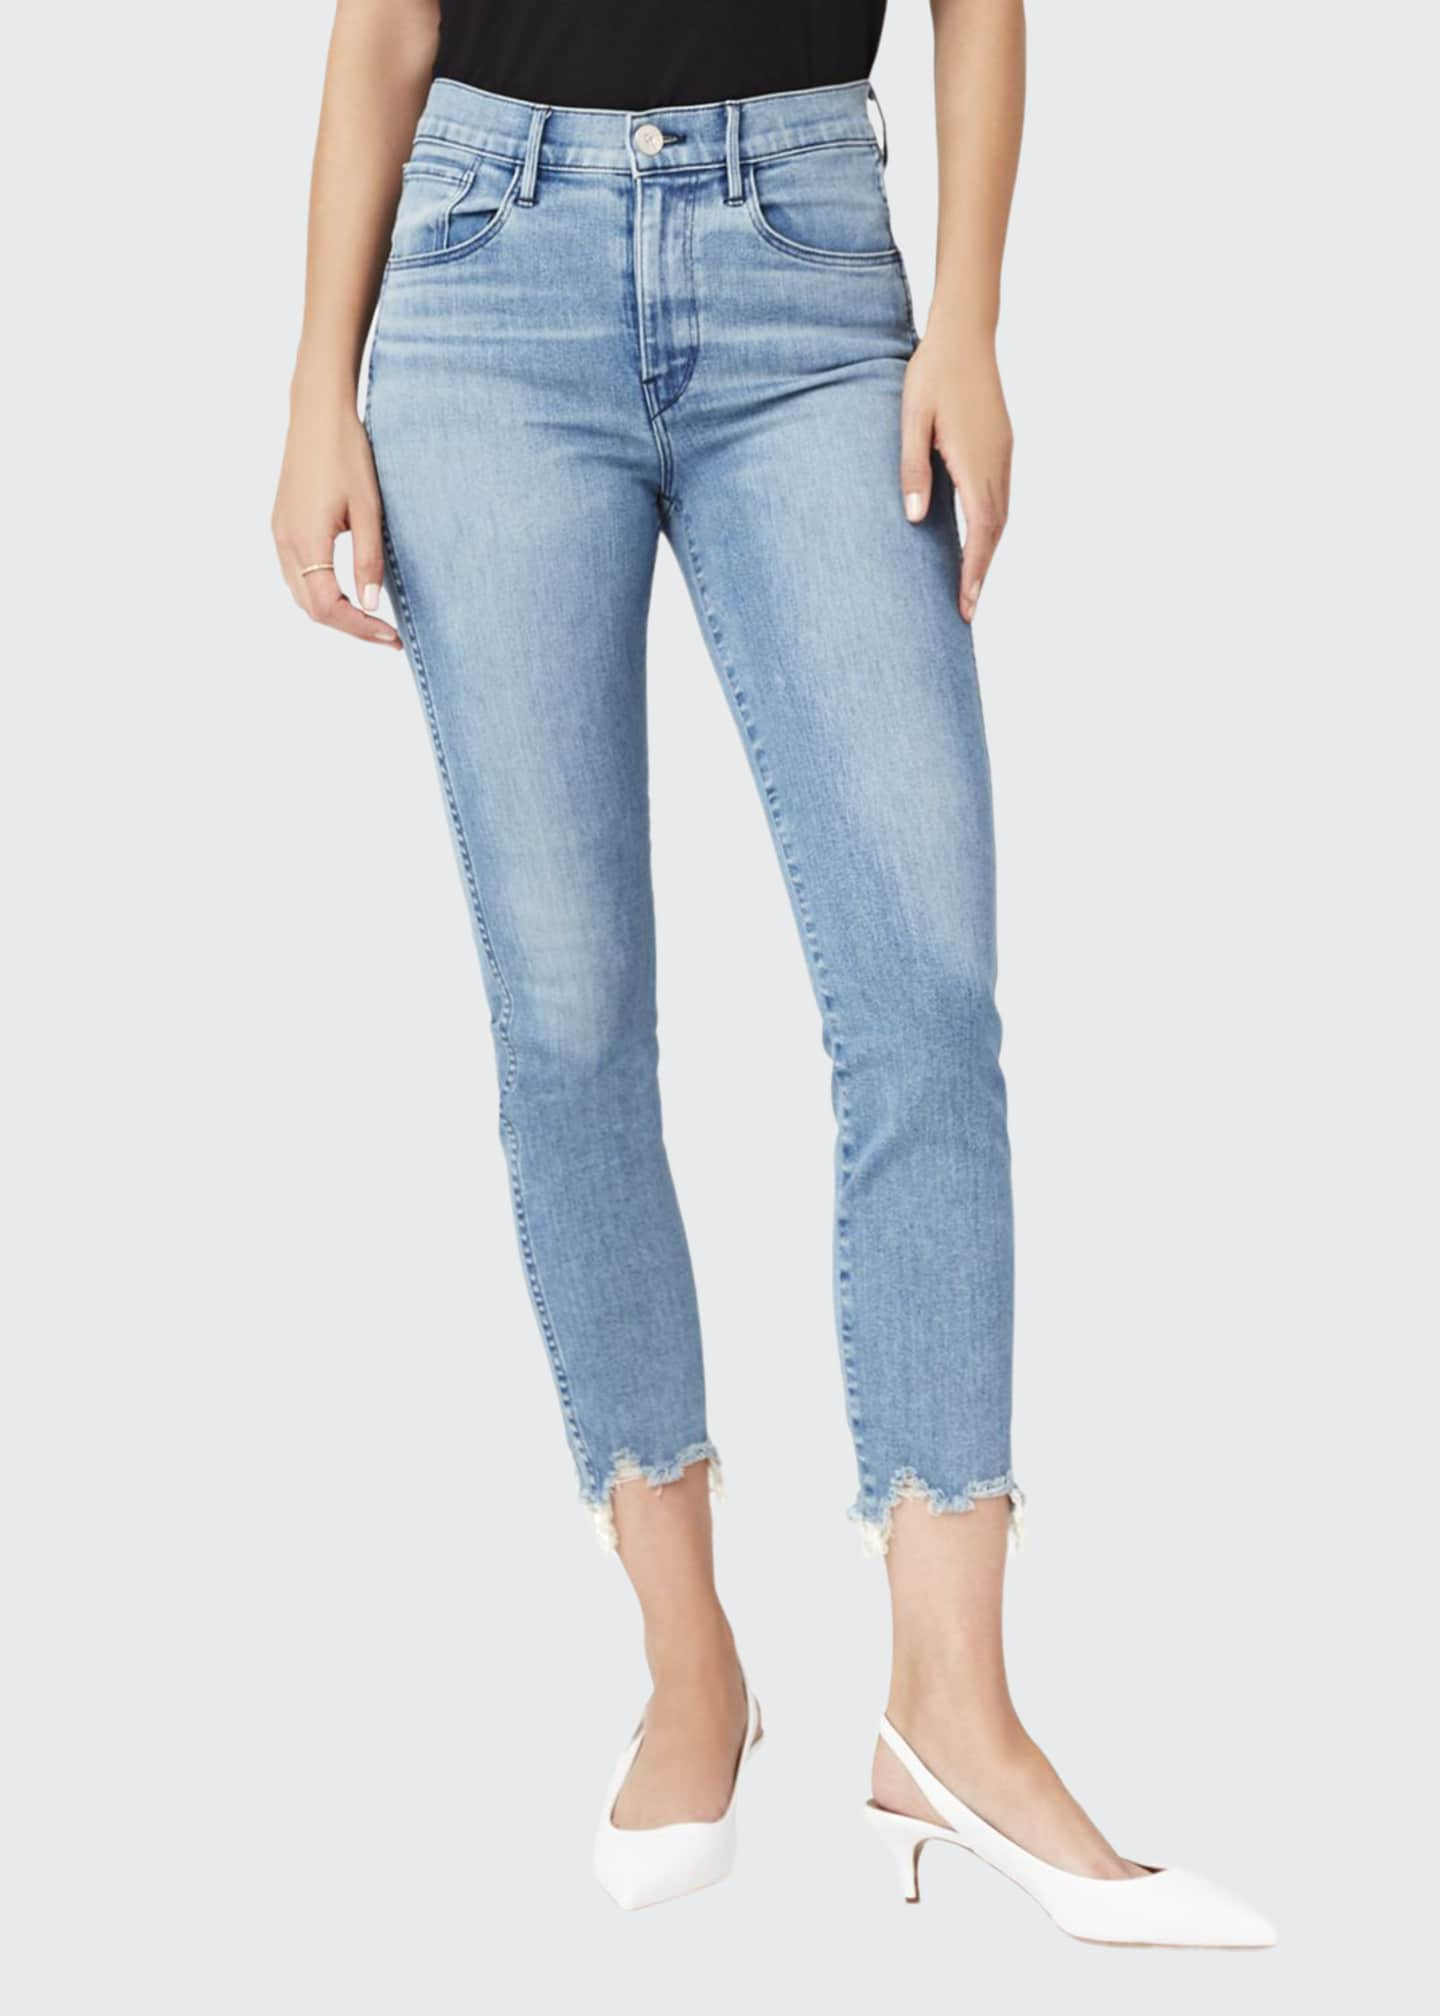 3x1 W3 High-Rise Authentic Straight-Leg Jeans